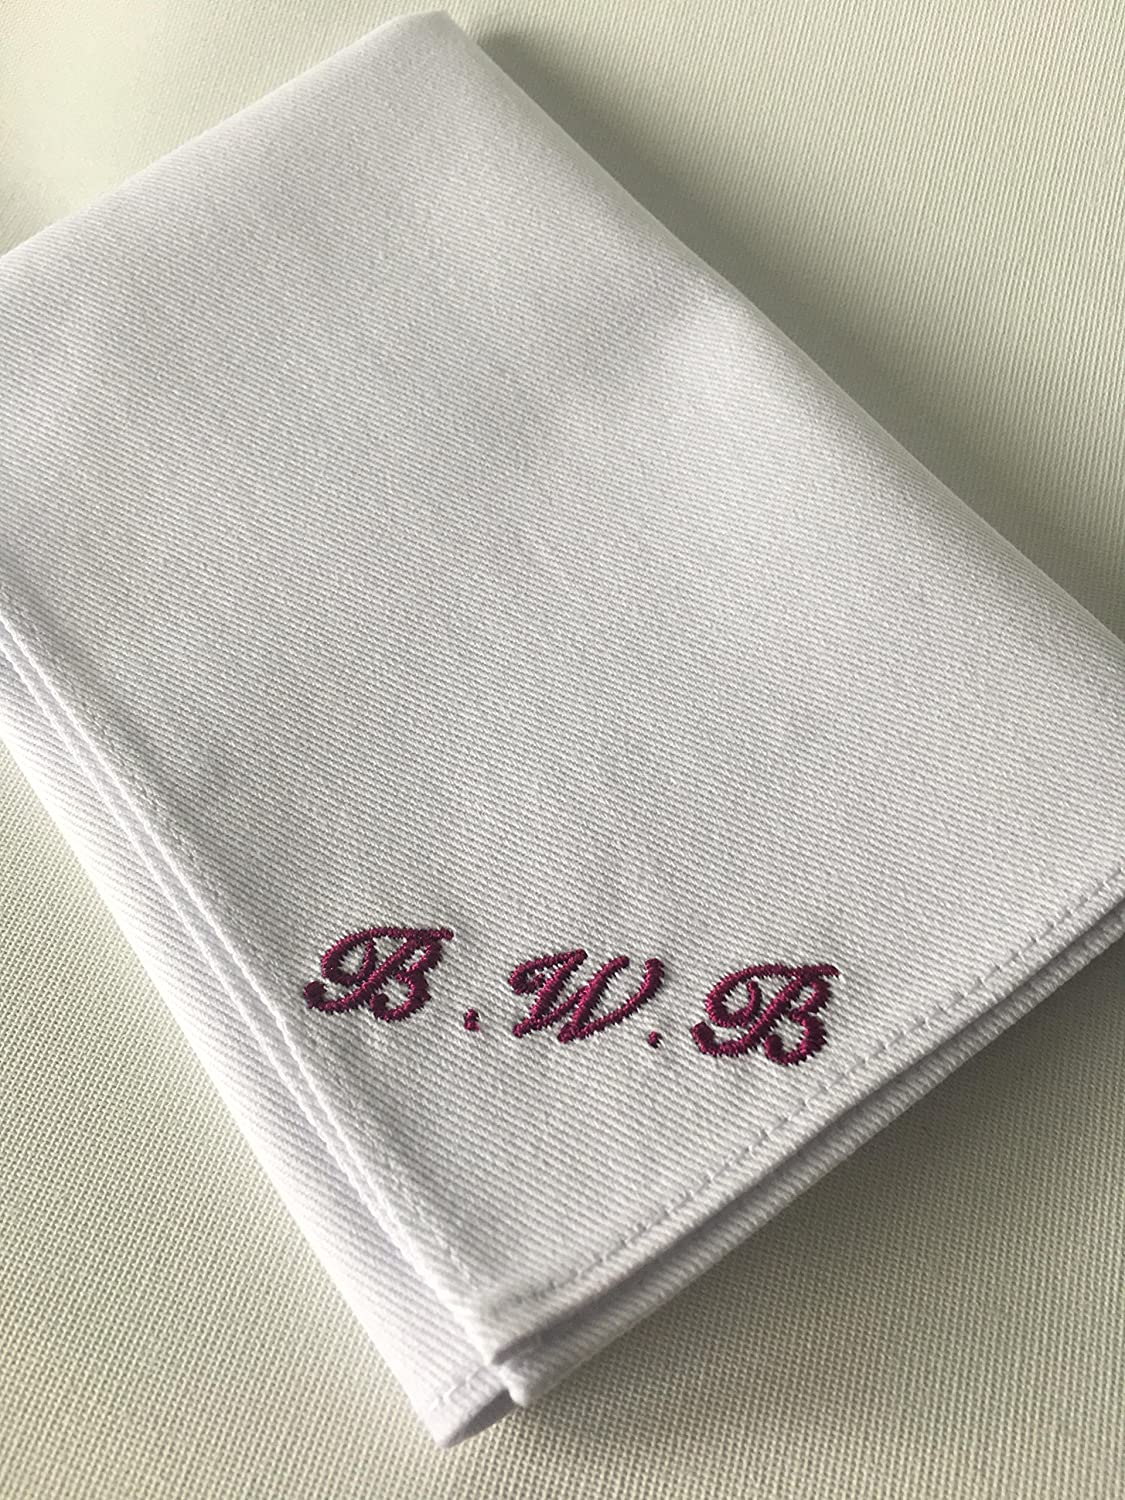 Personalized Handkerchief - White pocket square with initials - Pocket square with embroidery - Wedding - Accessories - Gift for him